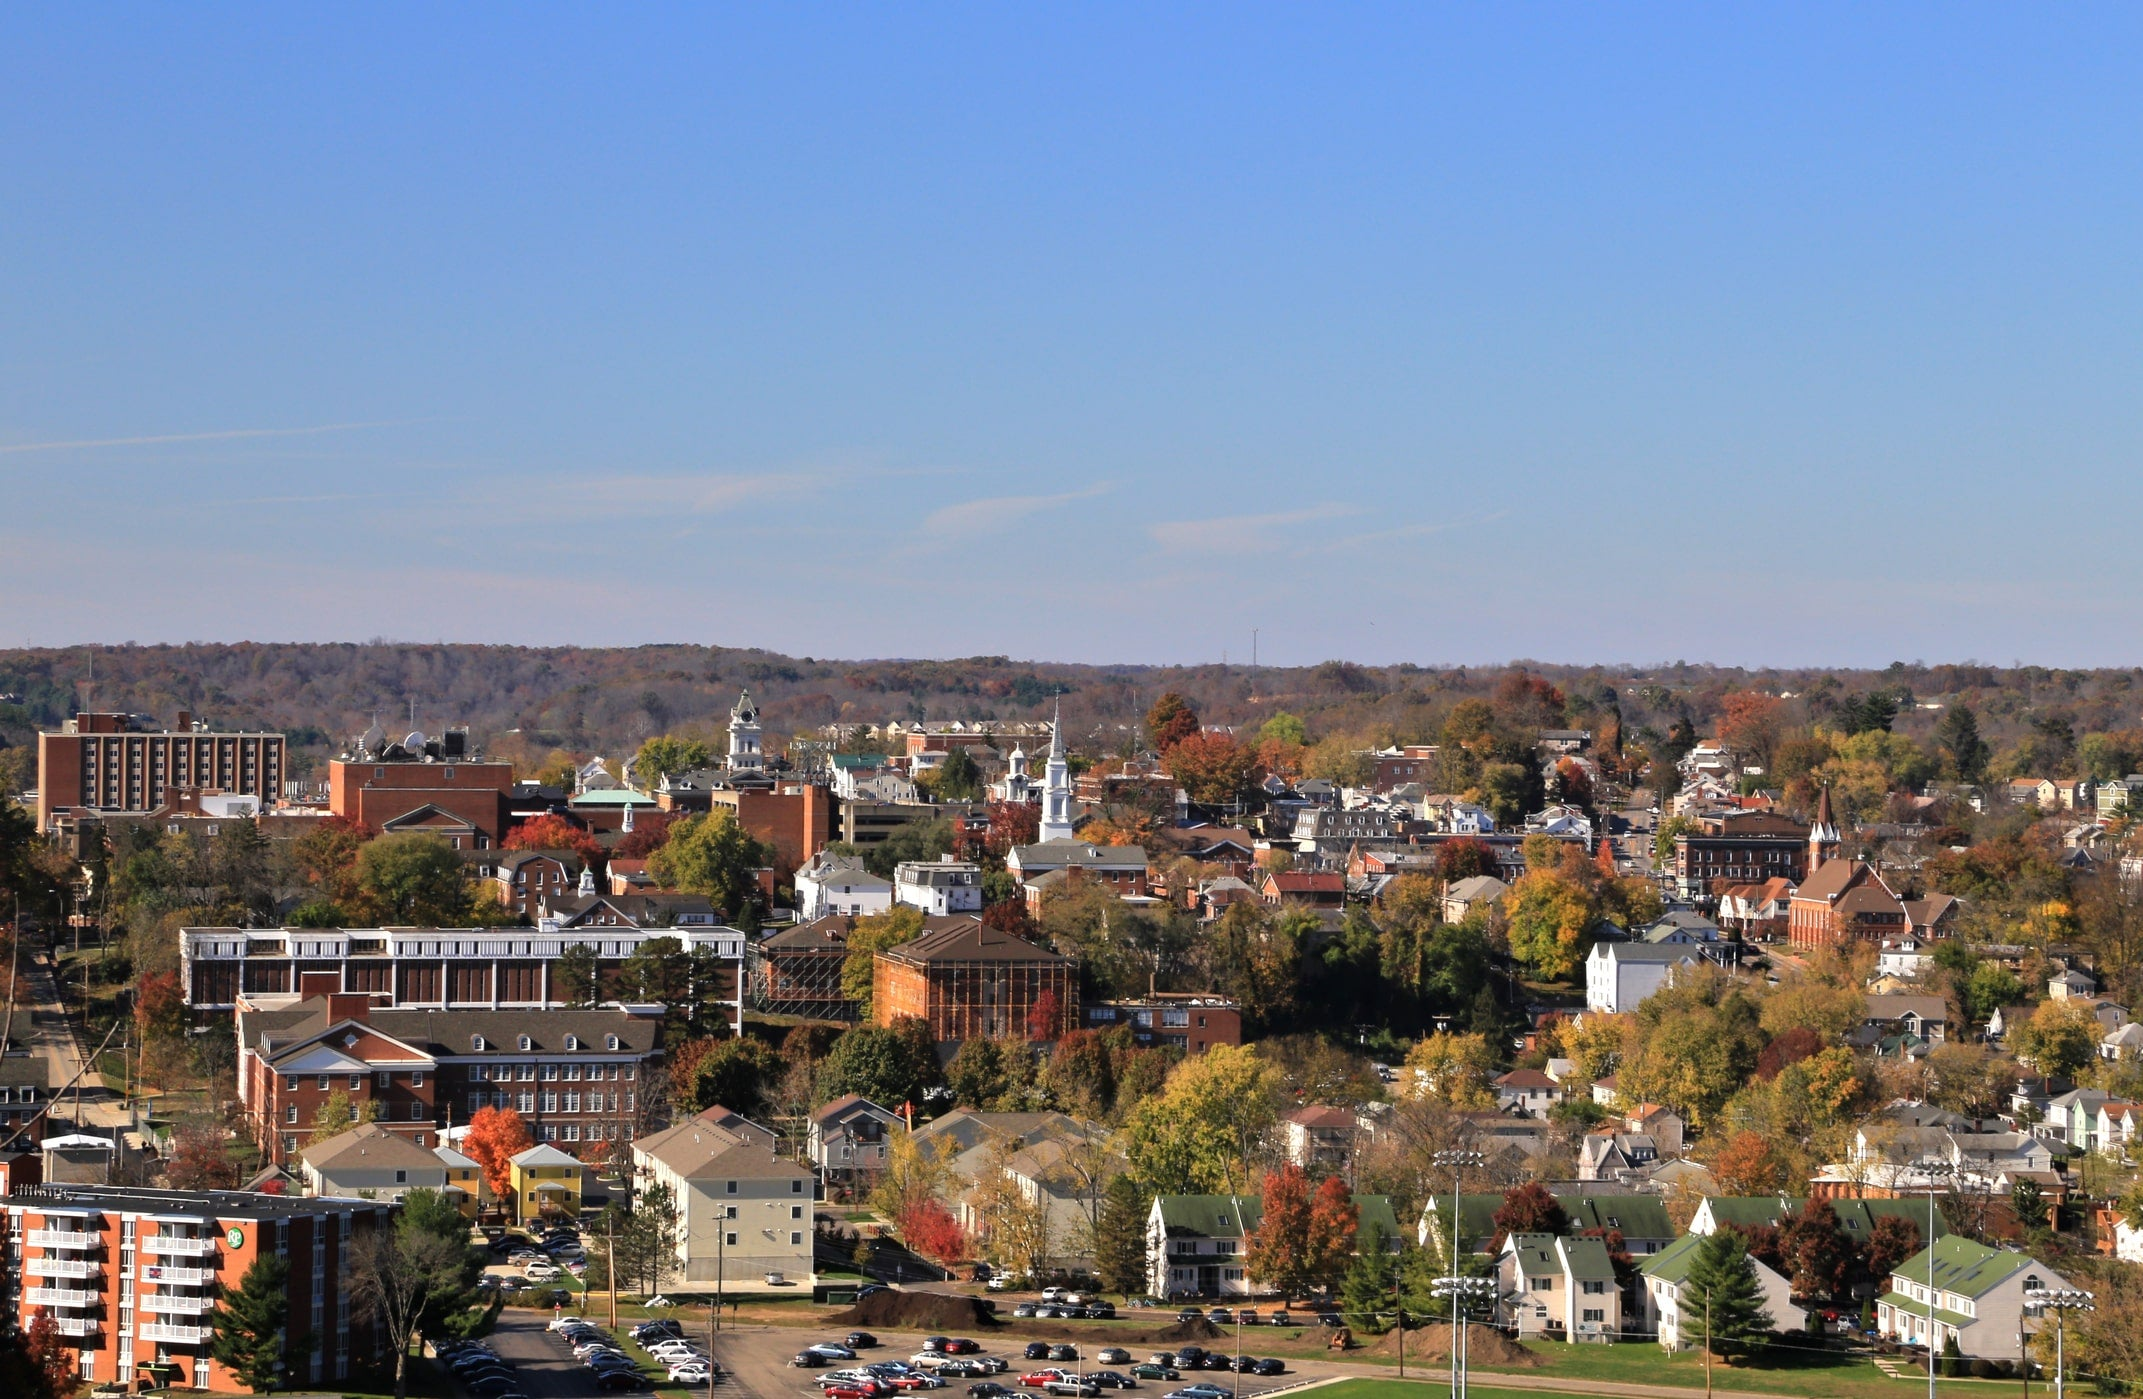 Here Are the 10 College Towns With the Most Violent Crimes